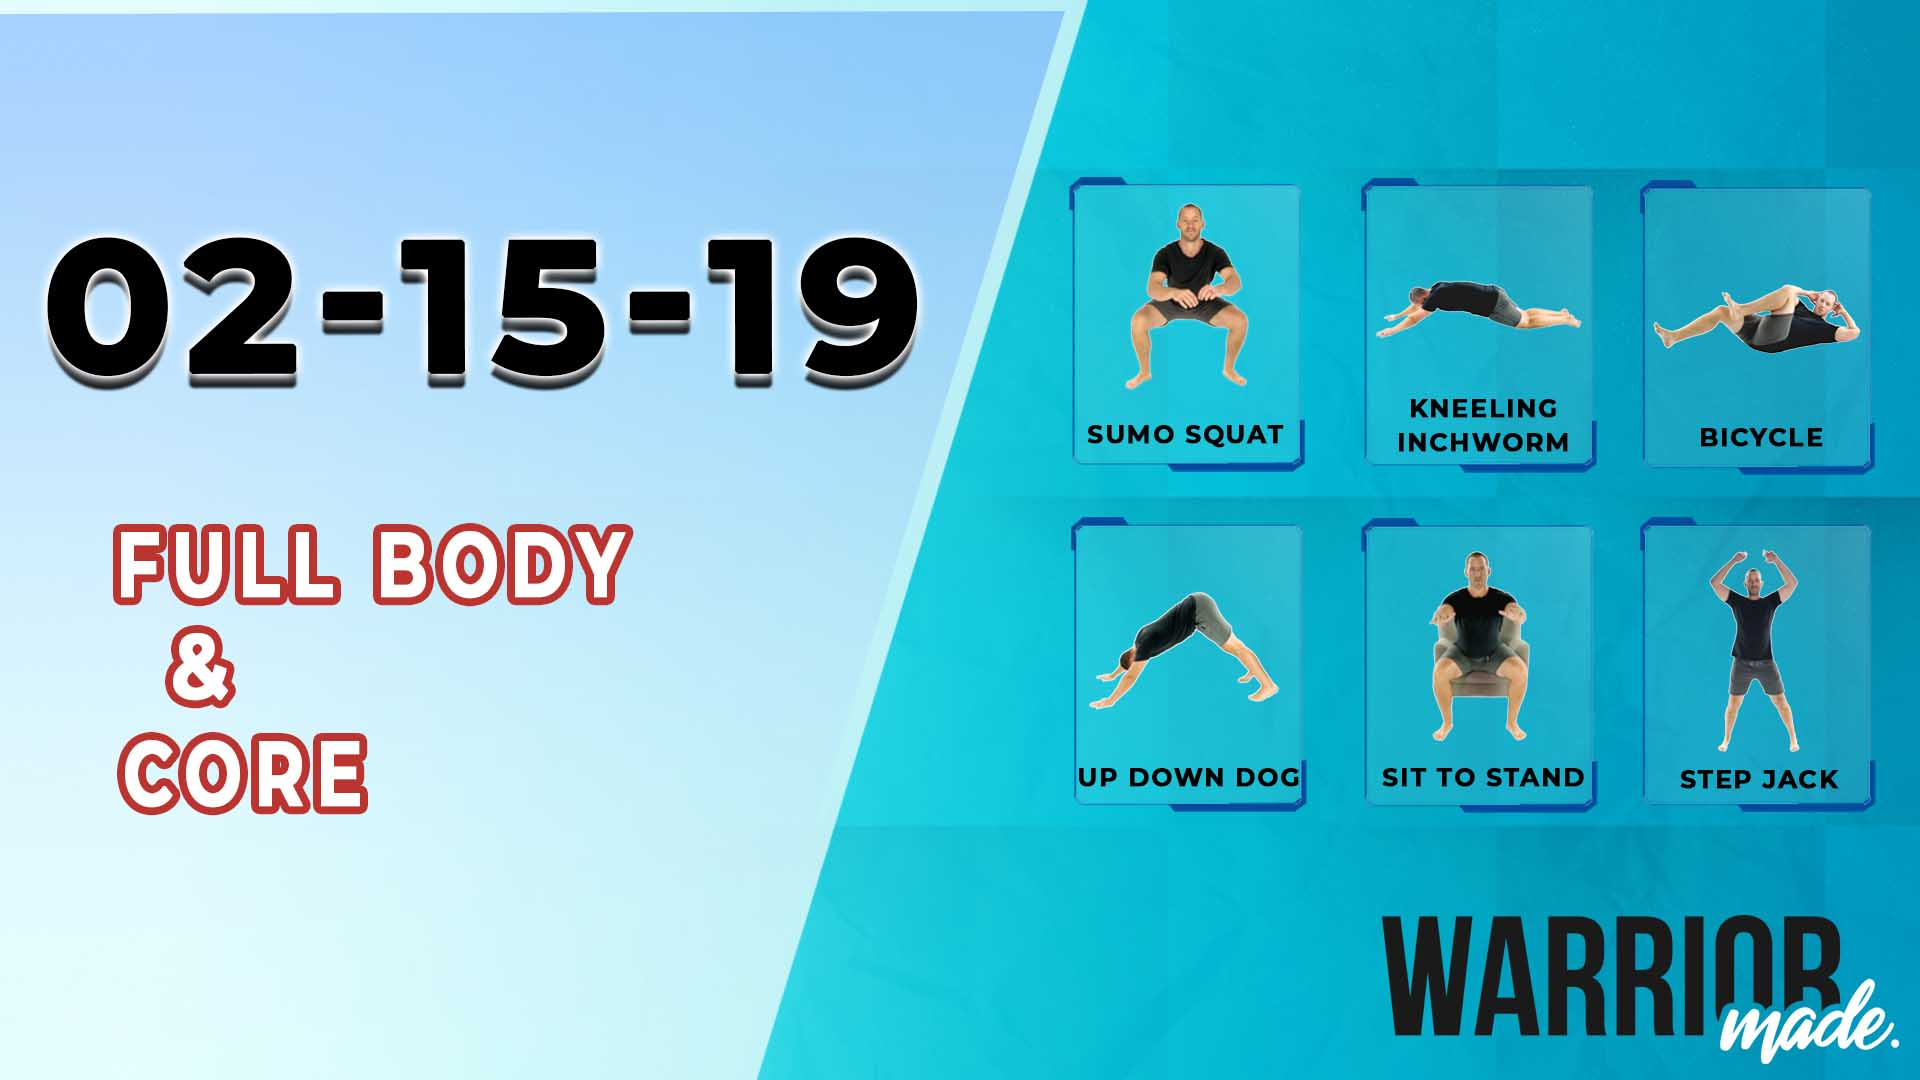 workouts-02-15-19